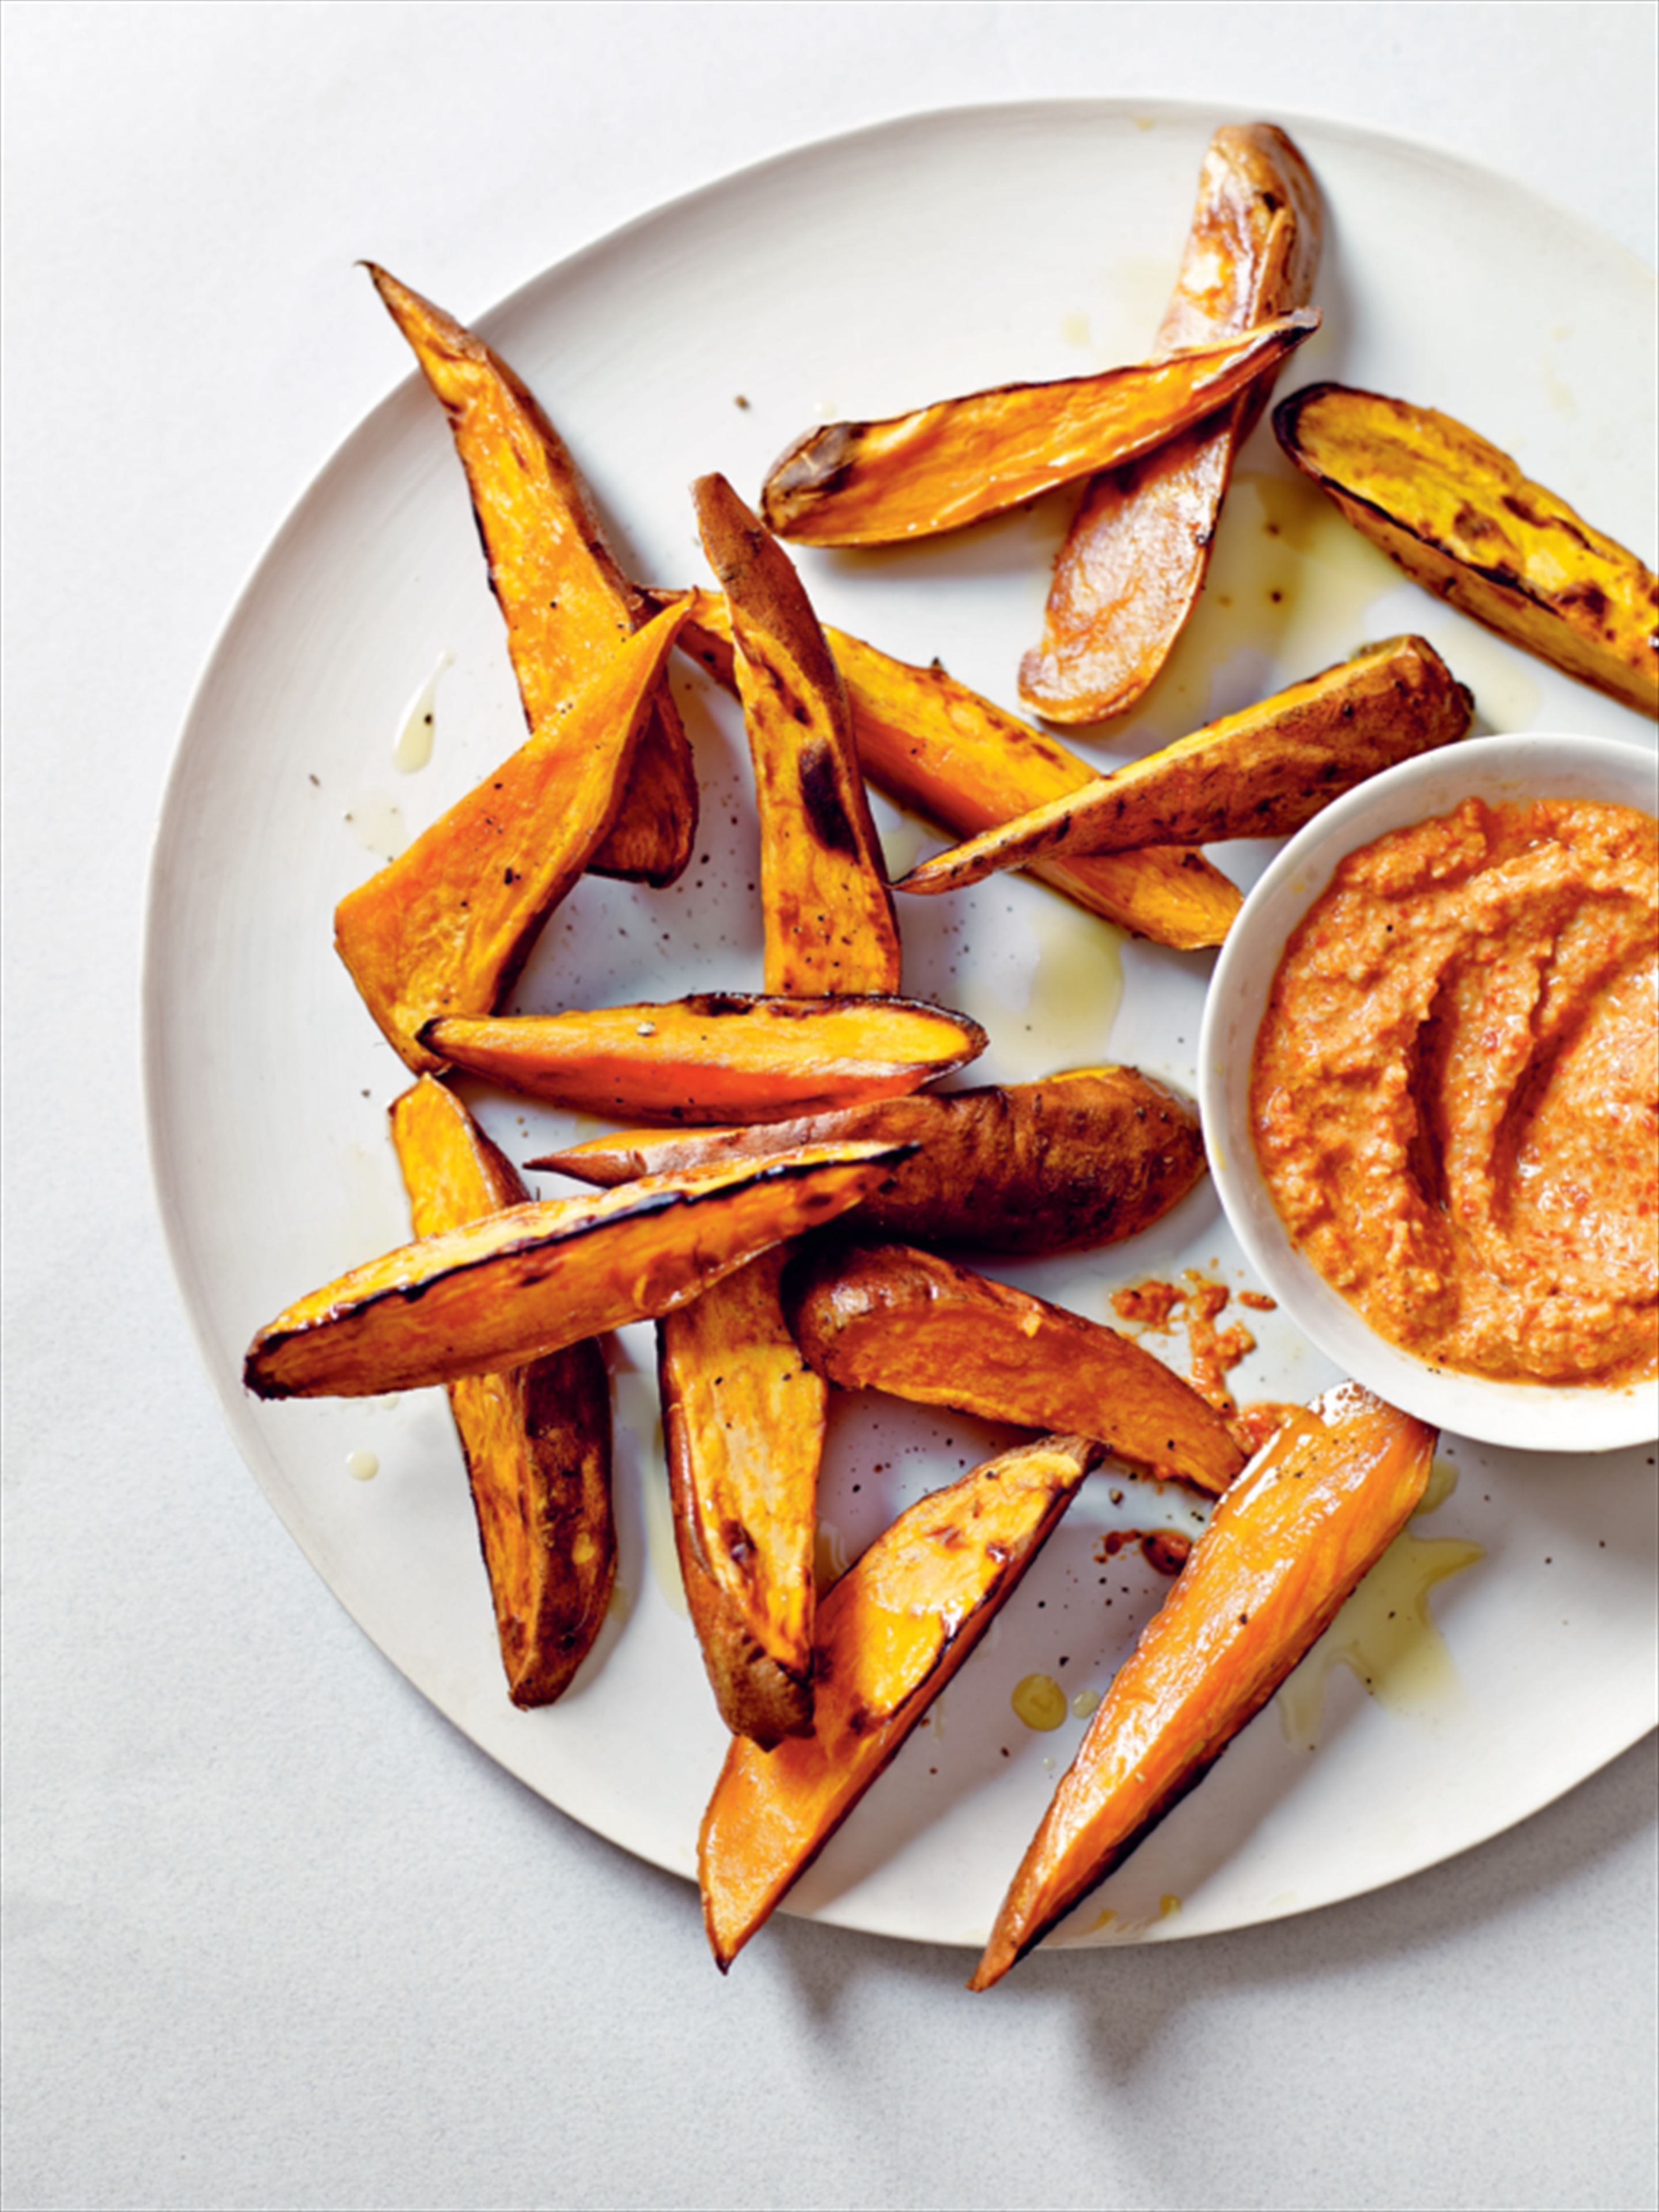 Sweet potato wedges with red pepper-walnut dip